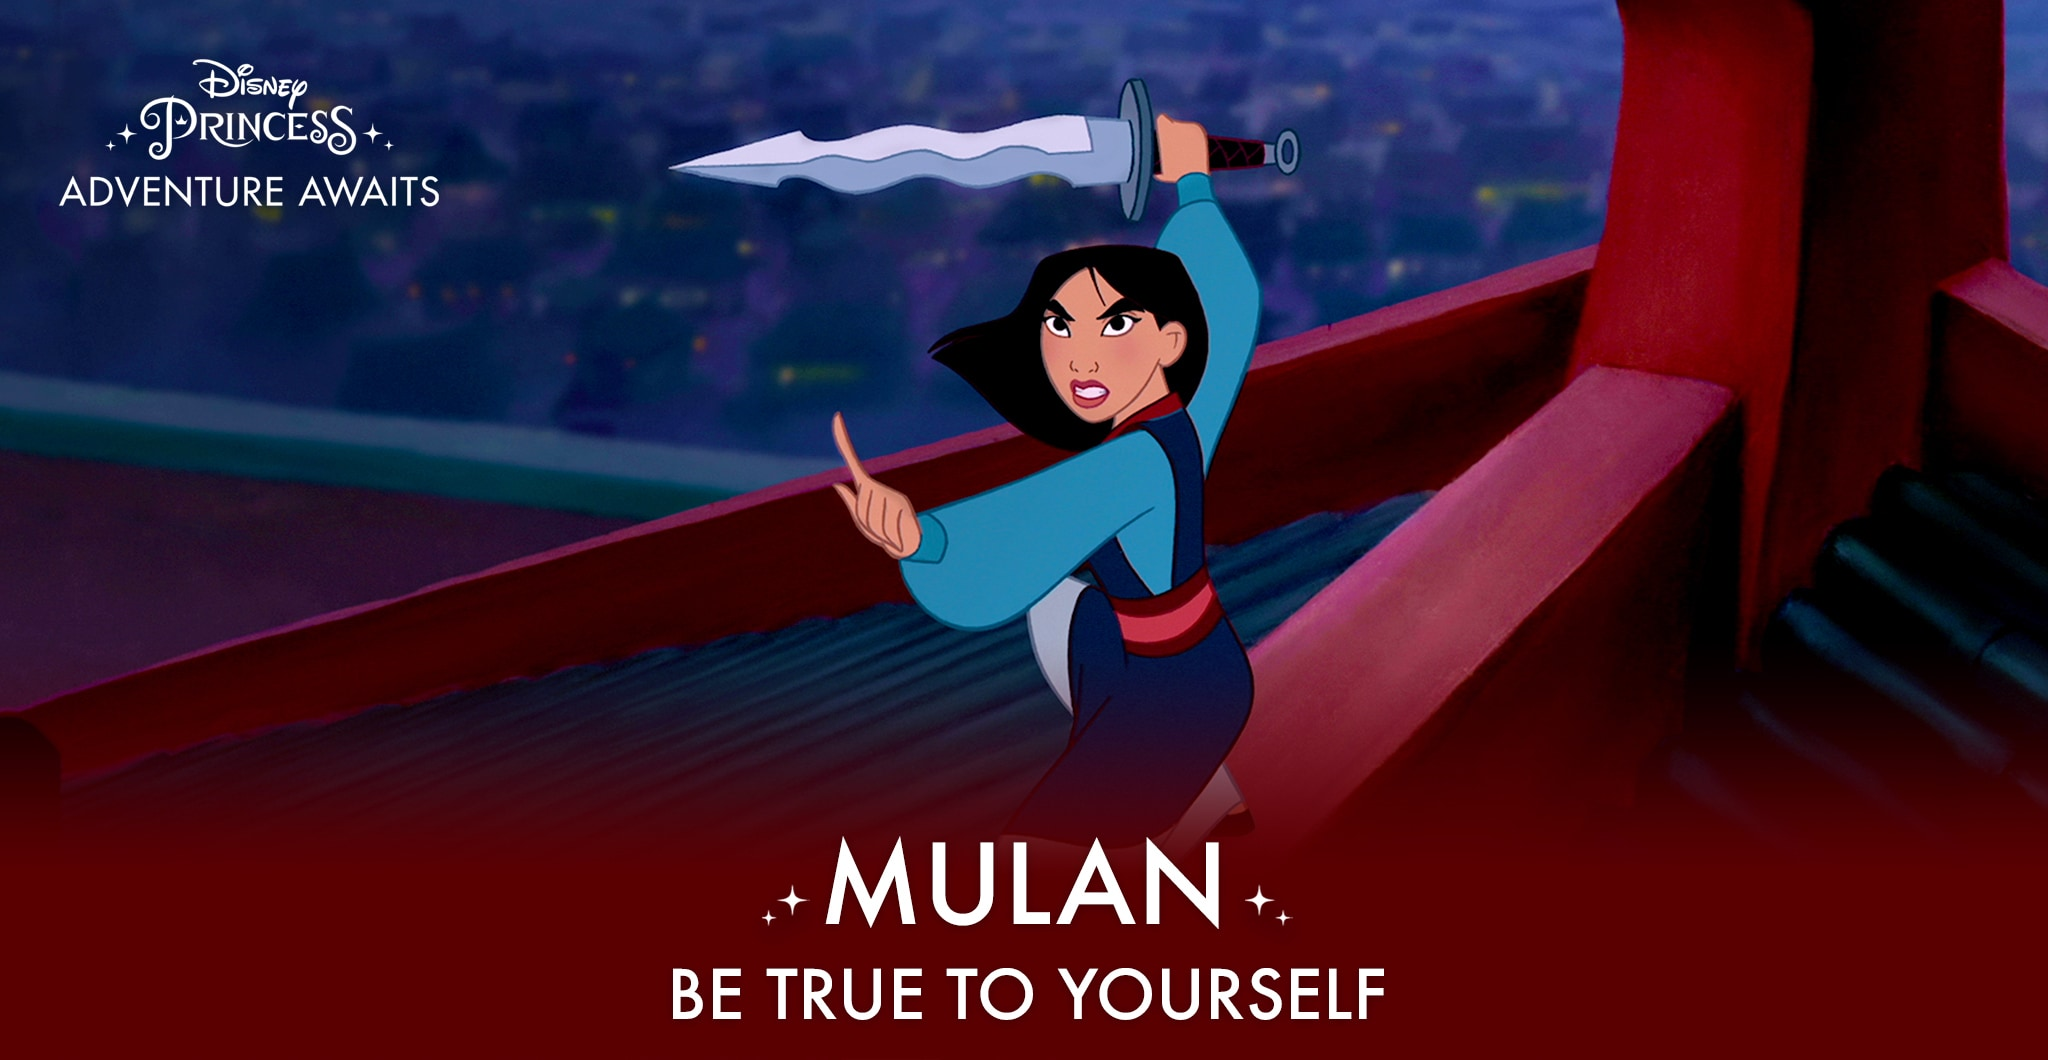 Mulan - Be True to Yourself